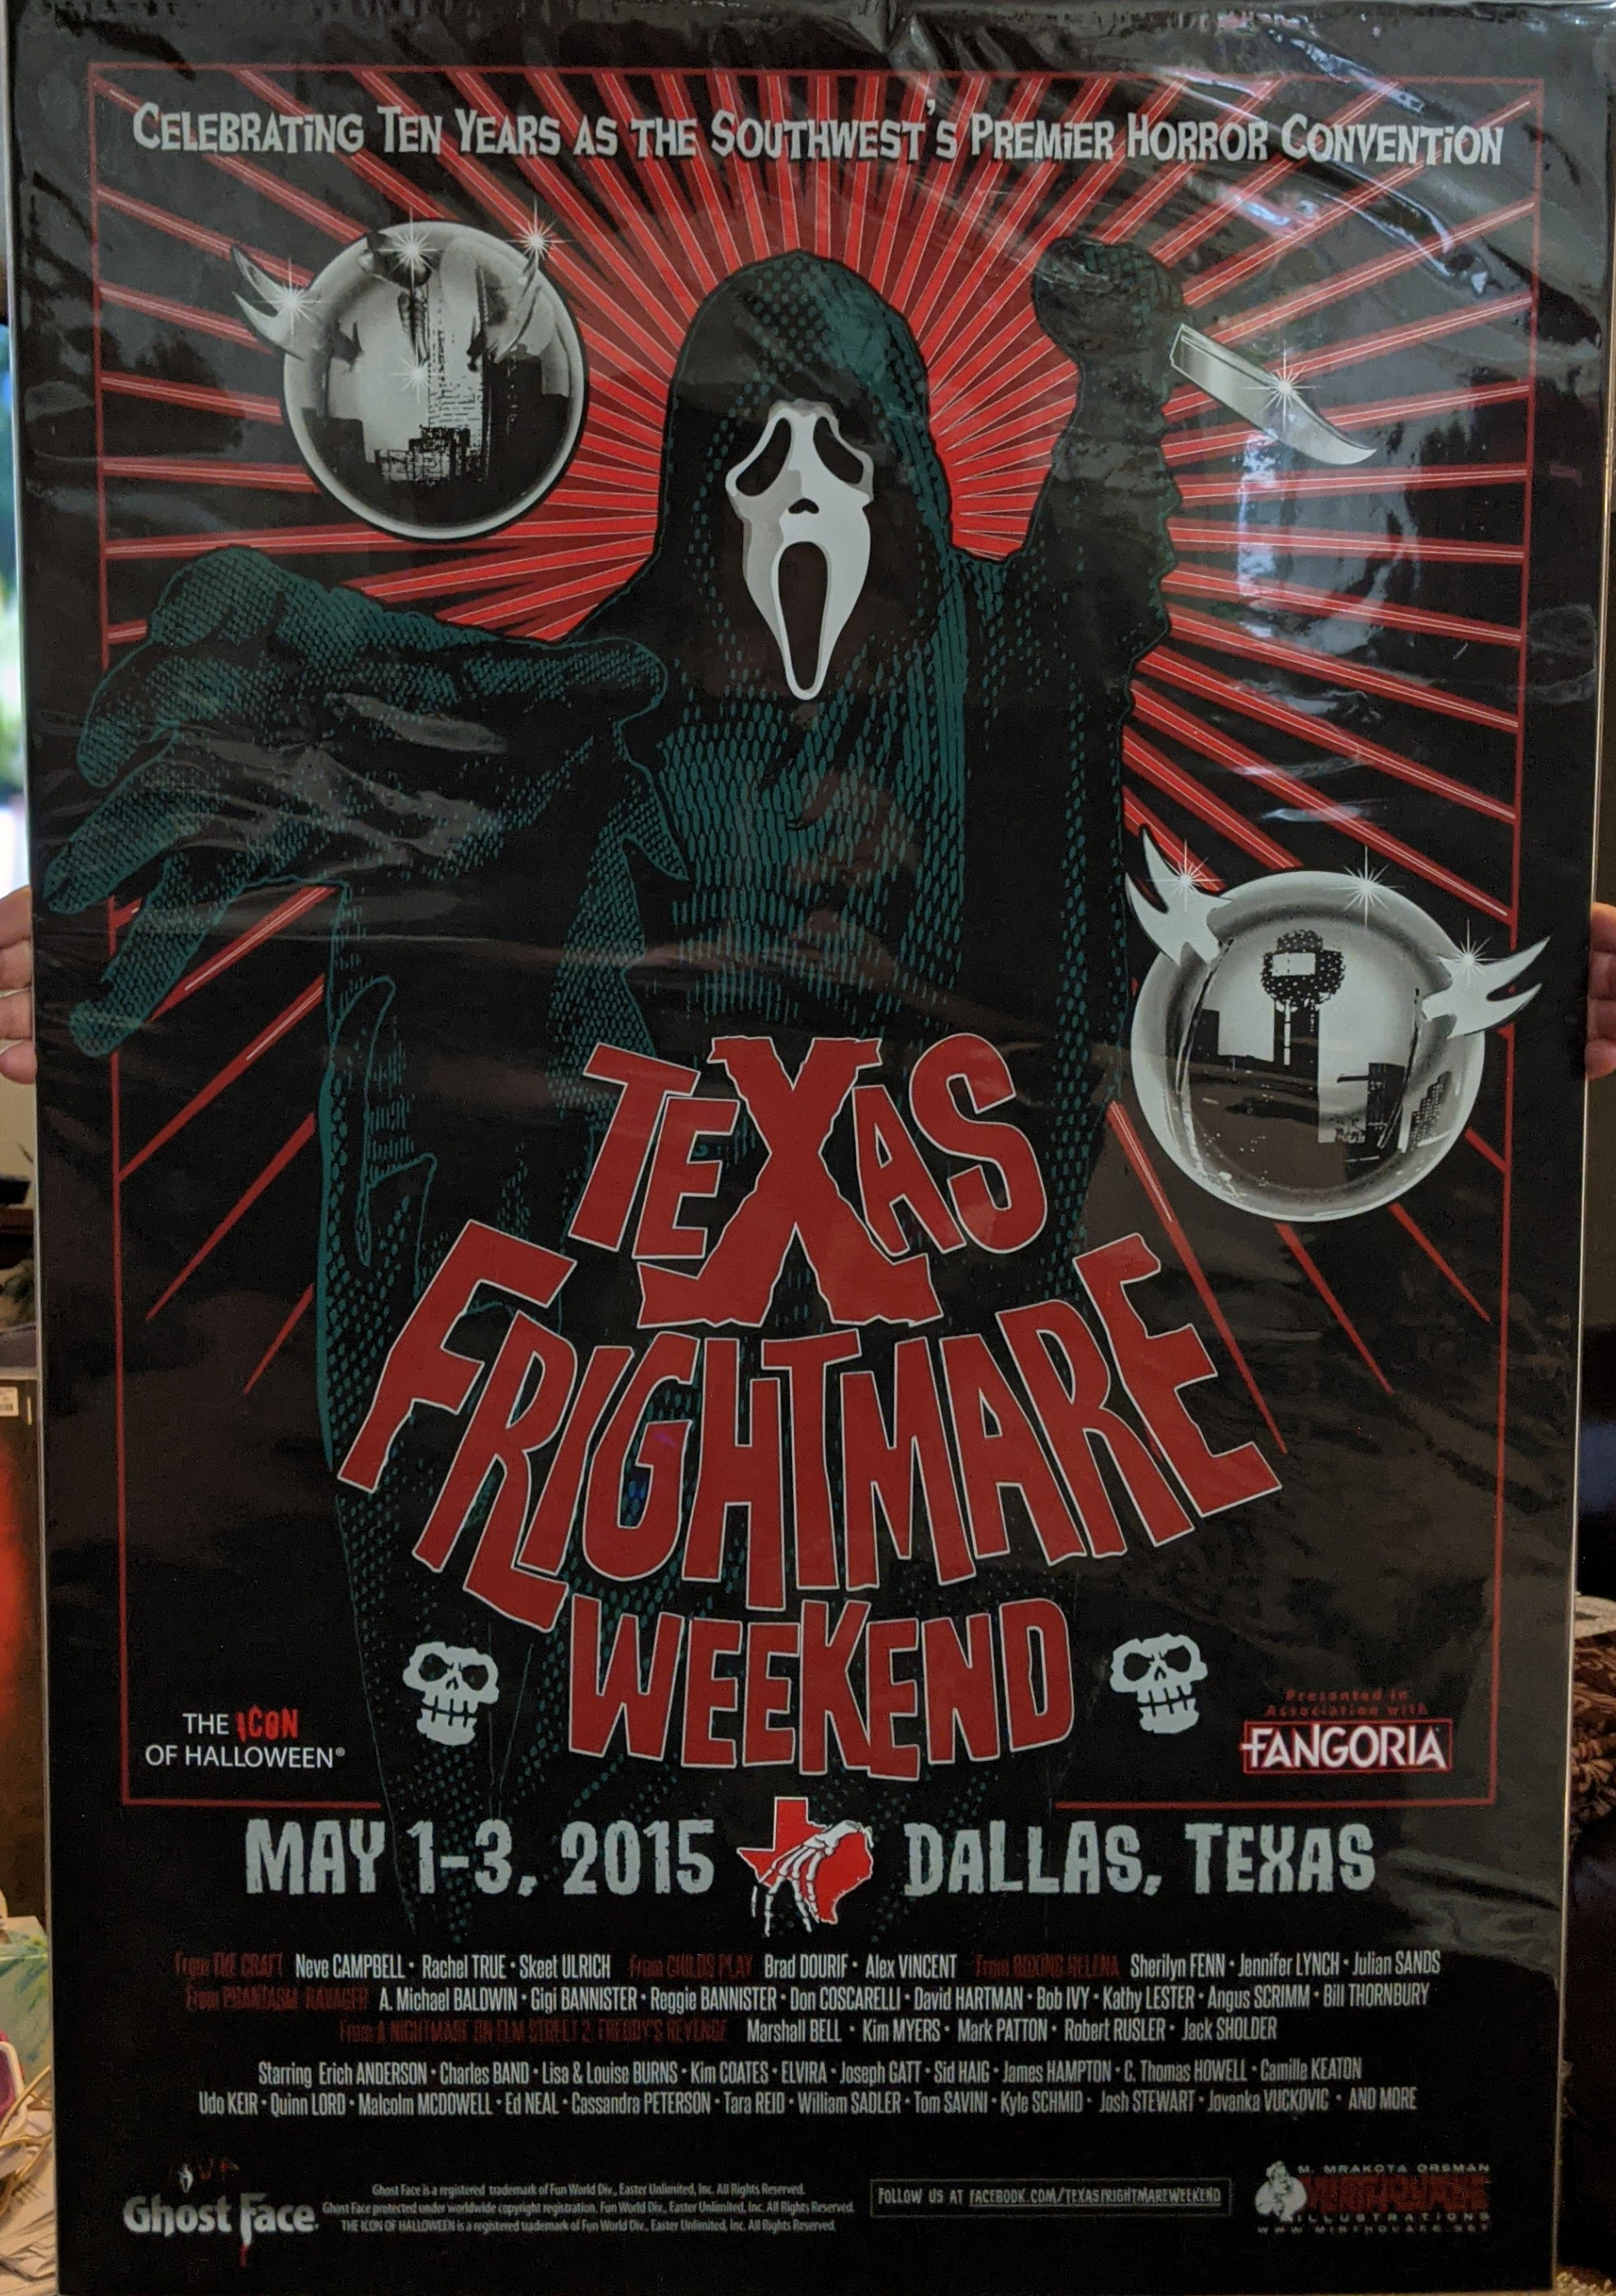 Texas Frightmare Weekend 2015 Ghost Face Poster